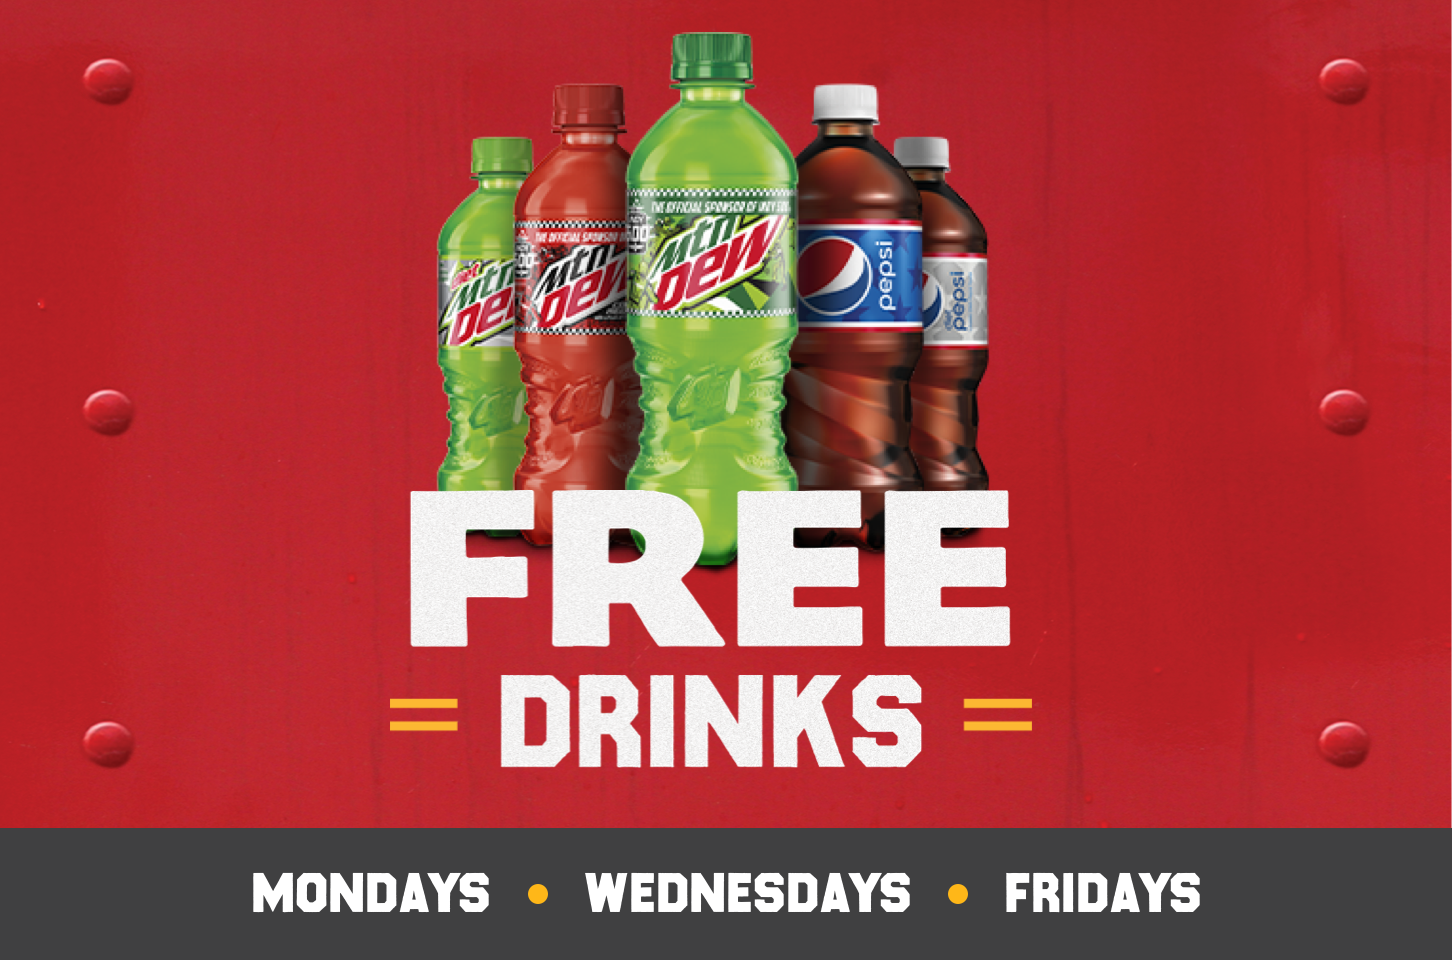 As a thank you, pro truck drivers can get free drinks all September on Mondays, Wednesdays and Fridays at participating Pilot Flying J Travel Centers with the myRewards Plus™ app.